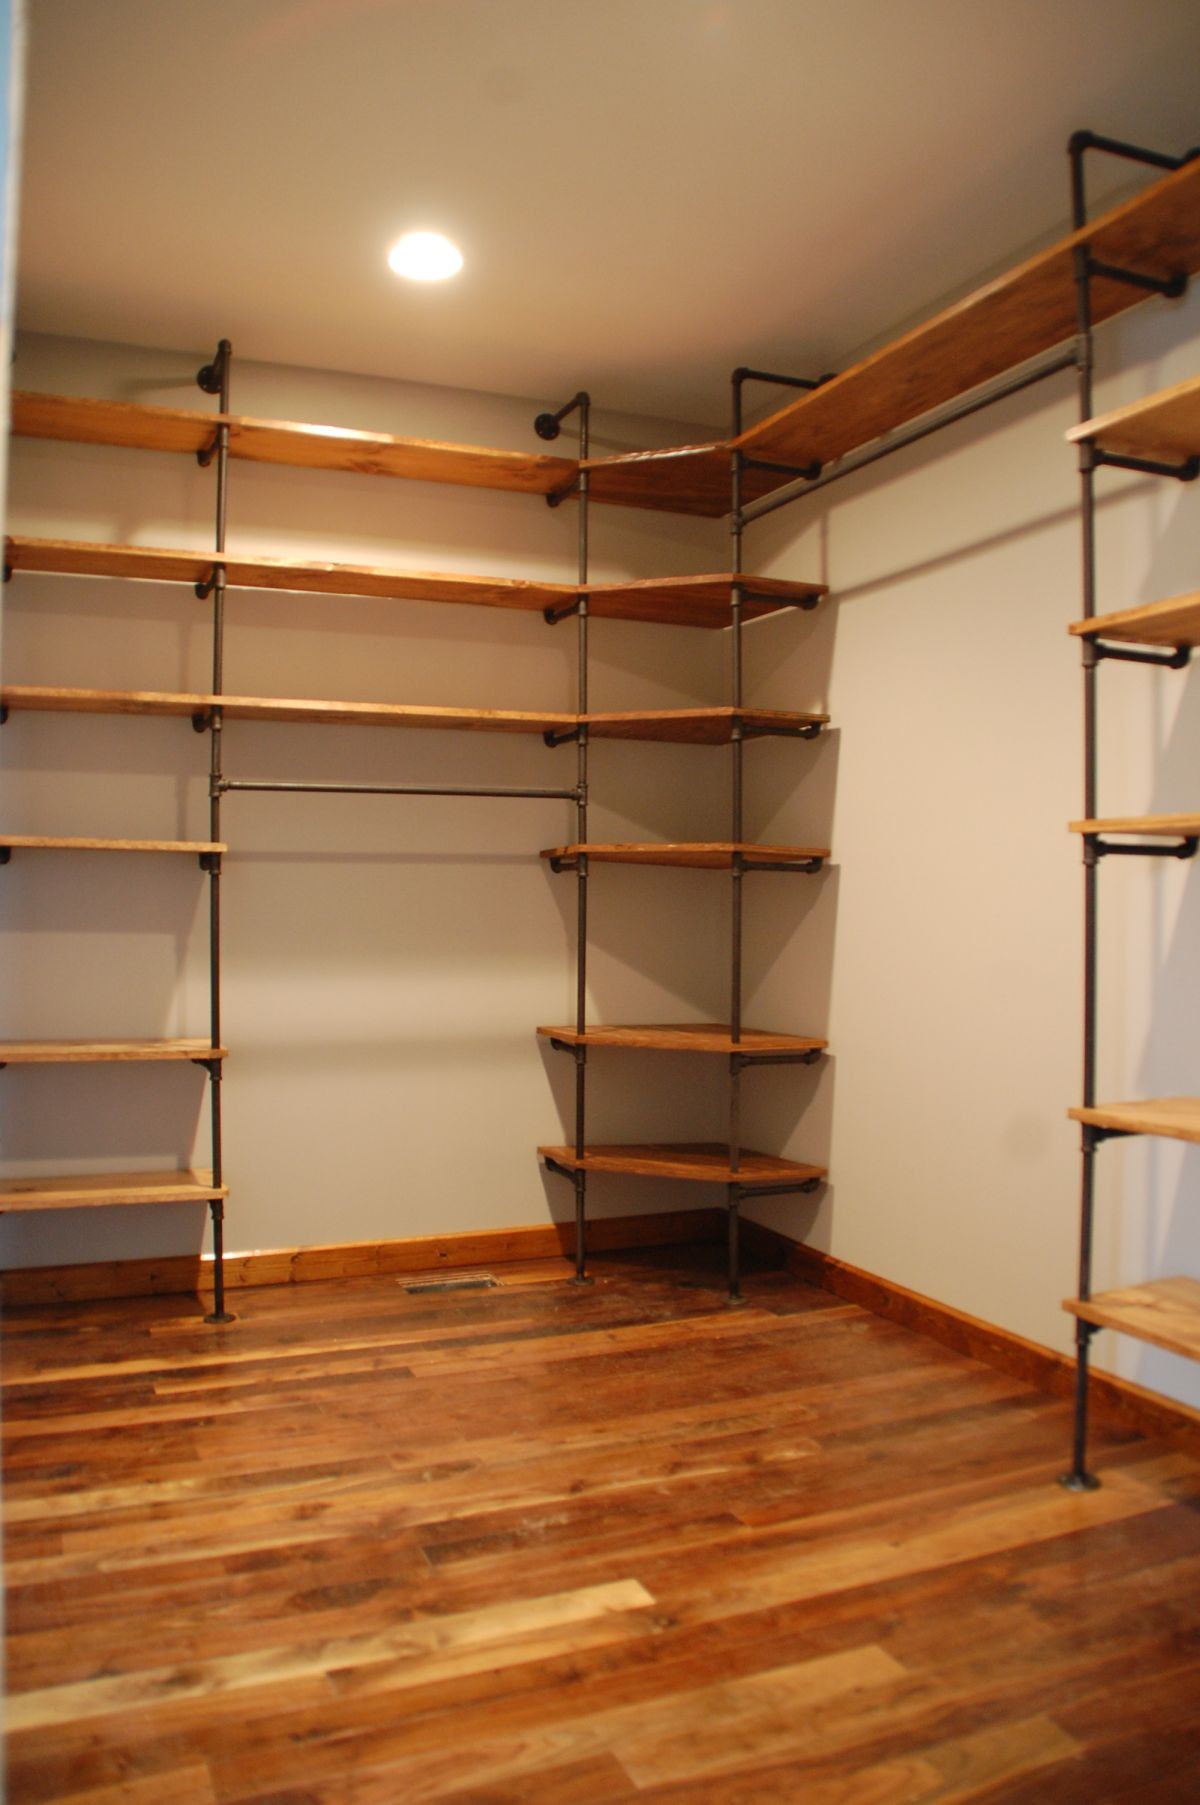 Best ideas about Industrial Pipe Shelving DIY . Save or Pin How To Customize A Closet For Improved Storage Capacity Now.